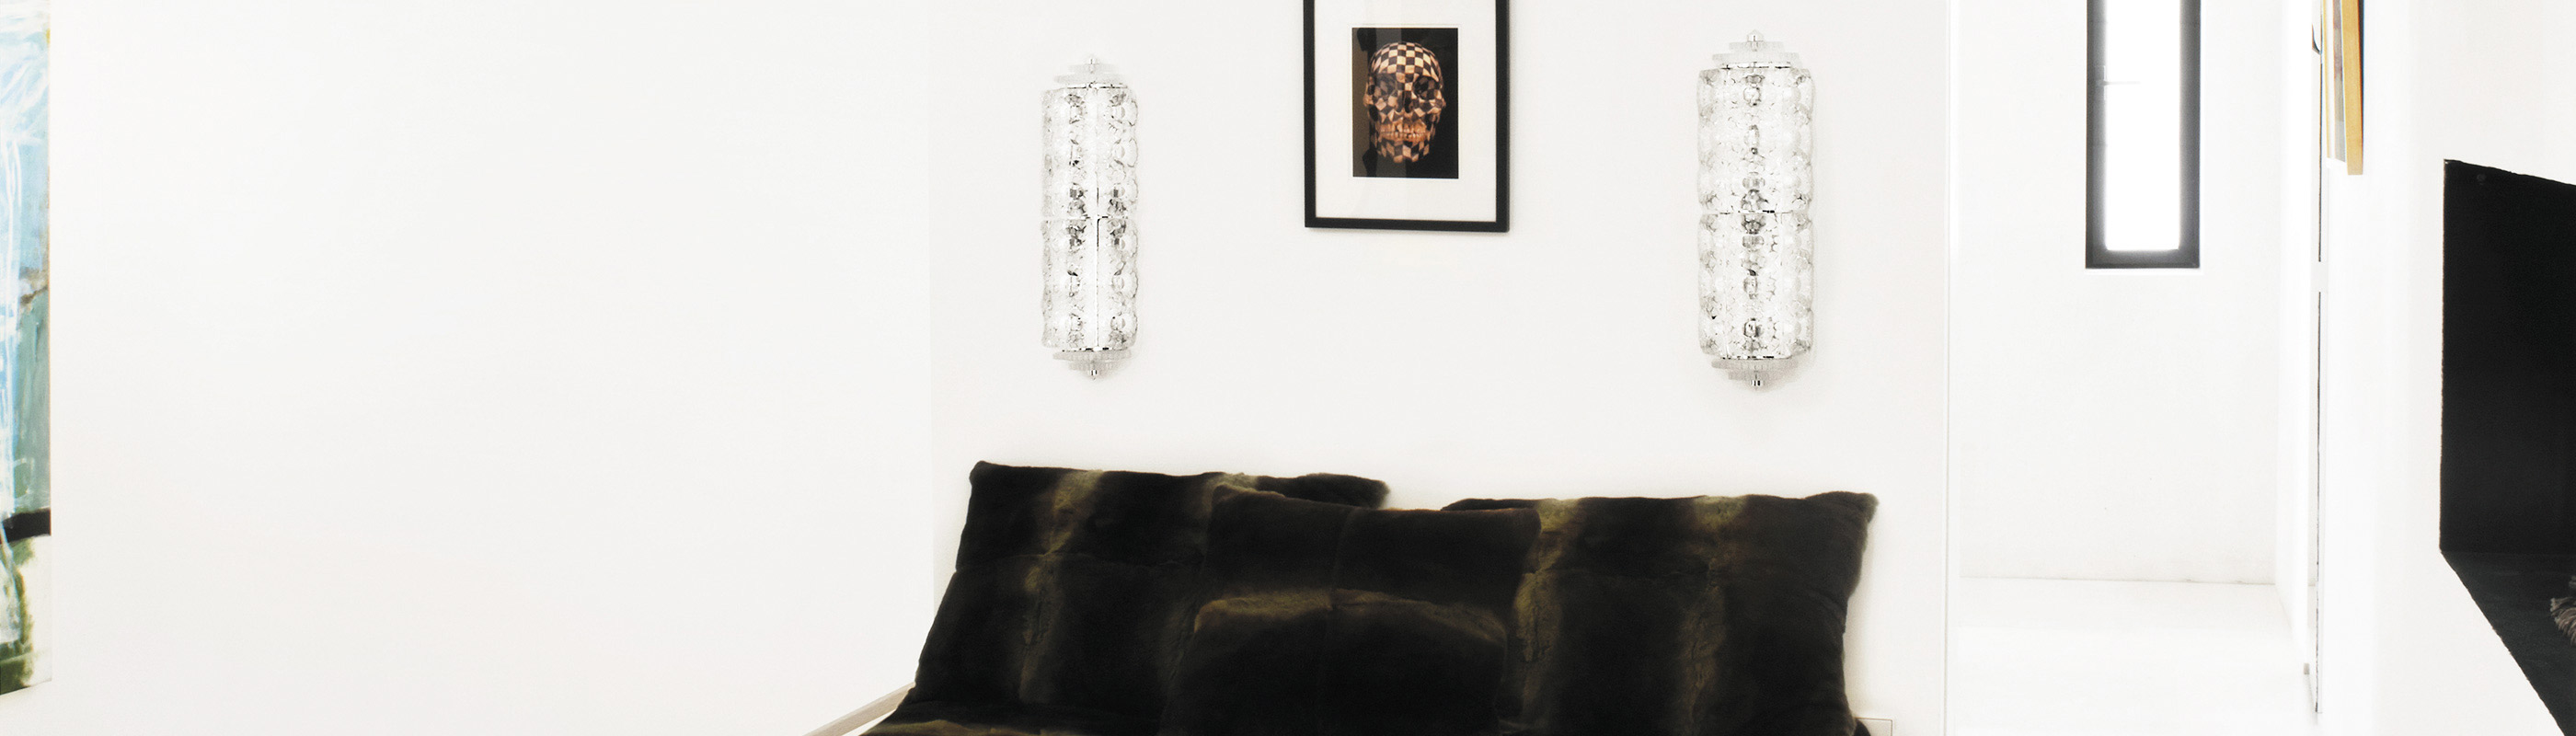 Wall Lamps 15 Items